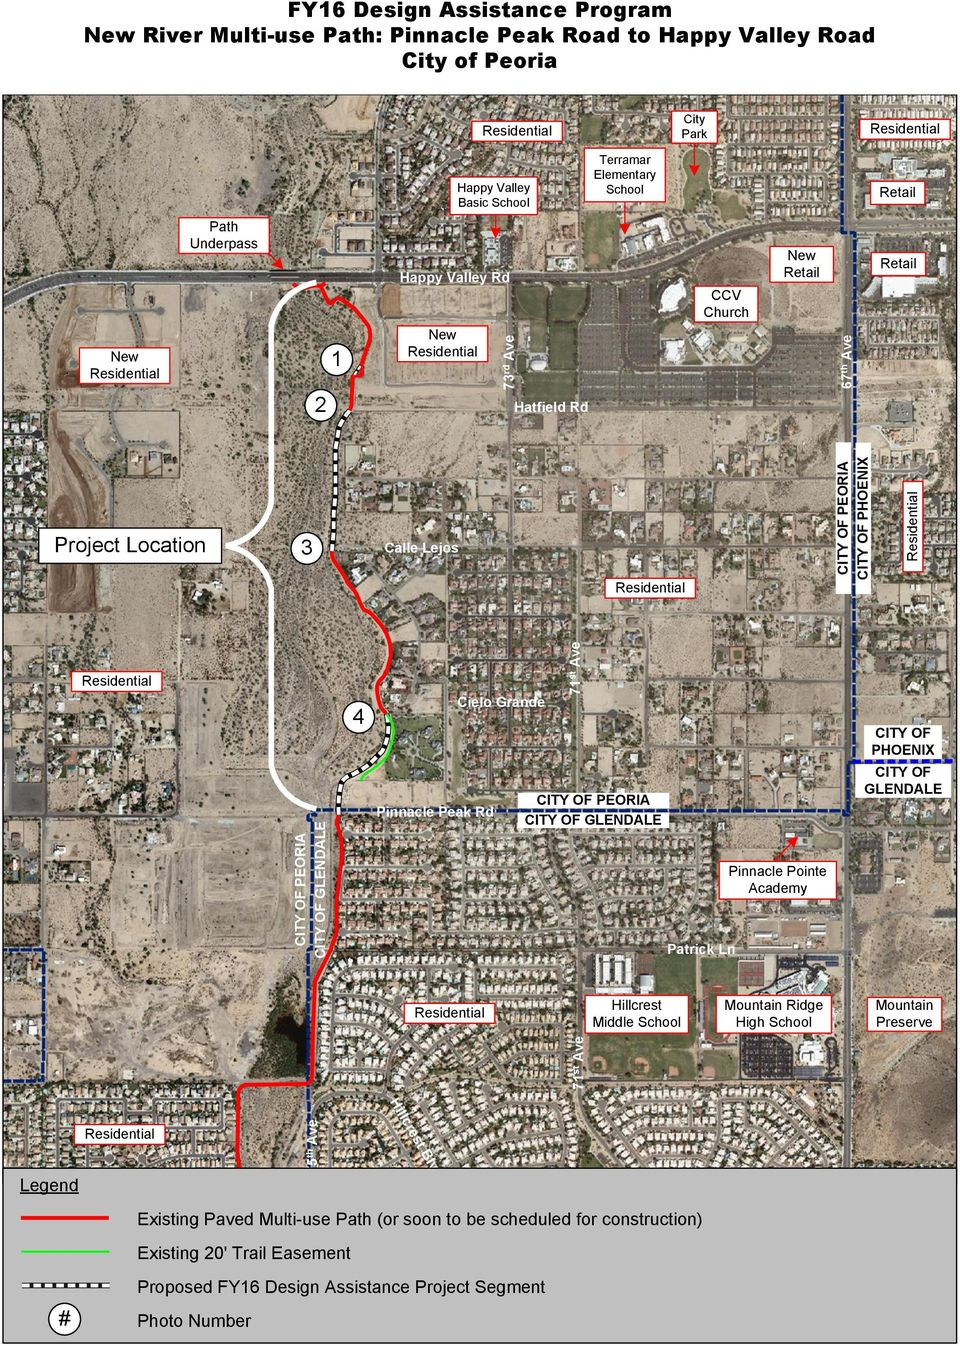 Rd Cielo Grande 71 st Ave CITY OF PEORIA CITY OF GLENDALE Patrick Ln Pinnacle Pointe Academy CITY OF PHOENIX CITY OF GLENDALE Hillcrest Middle School Mountain Ridge High School Mountain Preserve 71